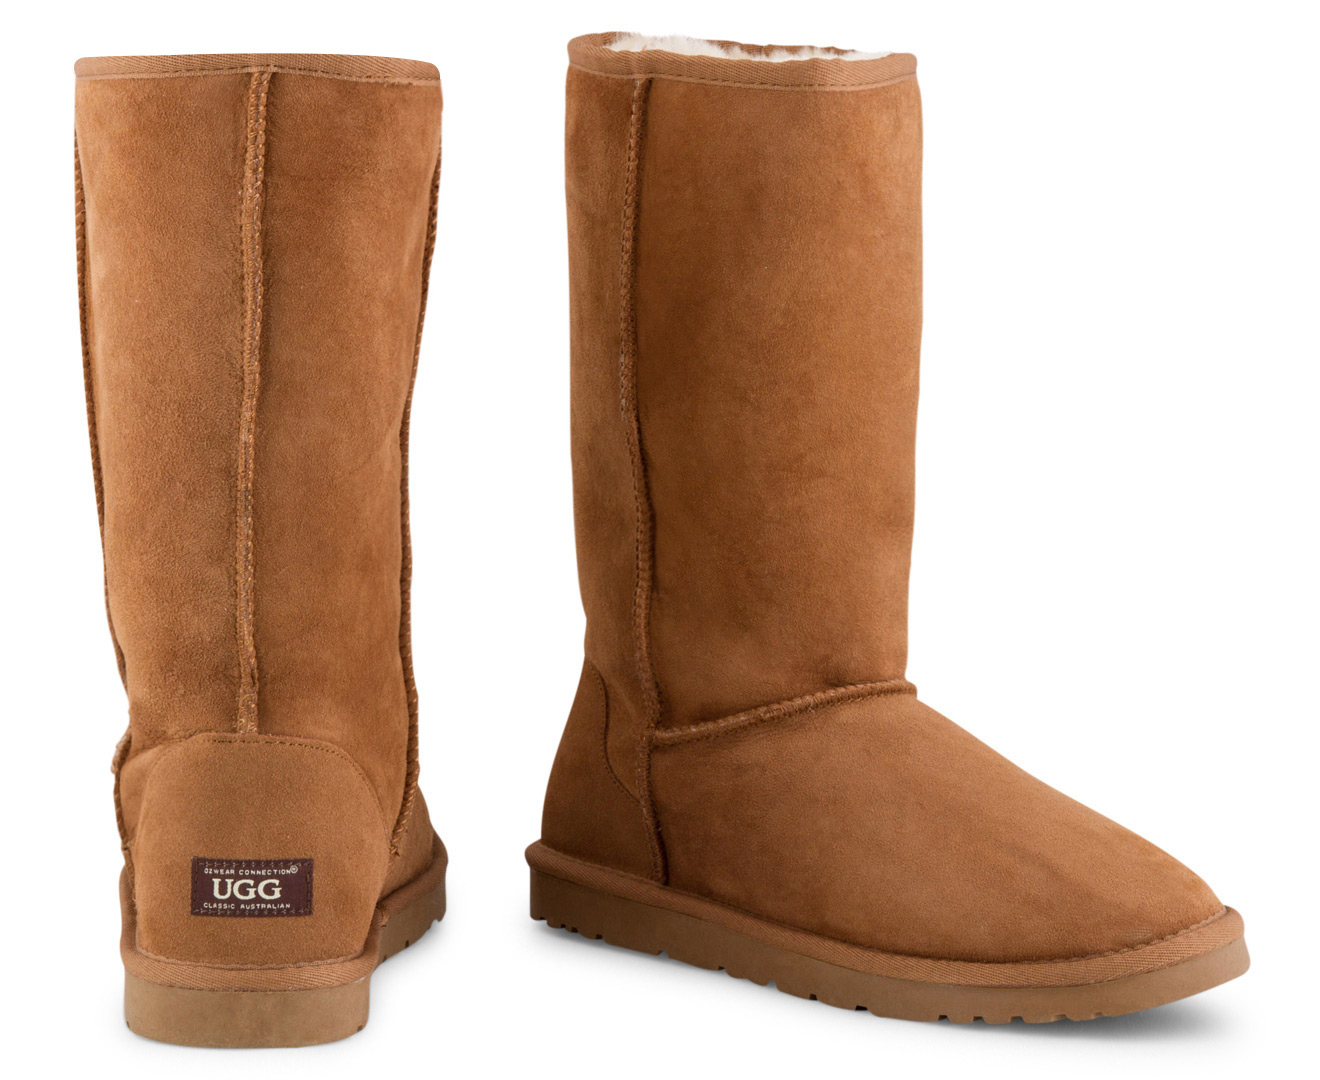 397f8269162 Details about OZWEAR Connection Classic Long Ugg Boot - Chestnut